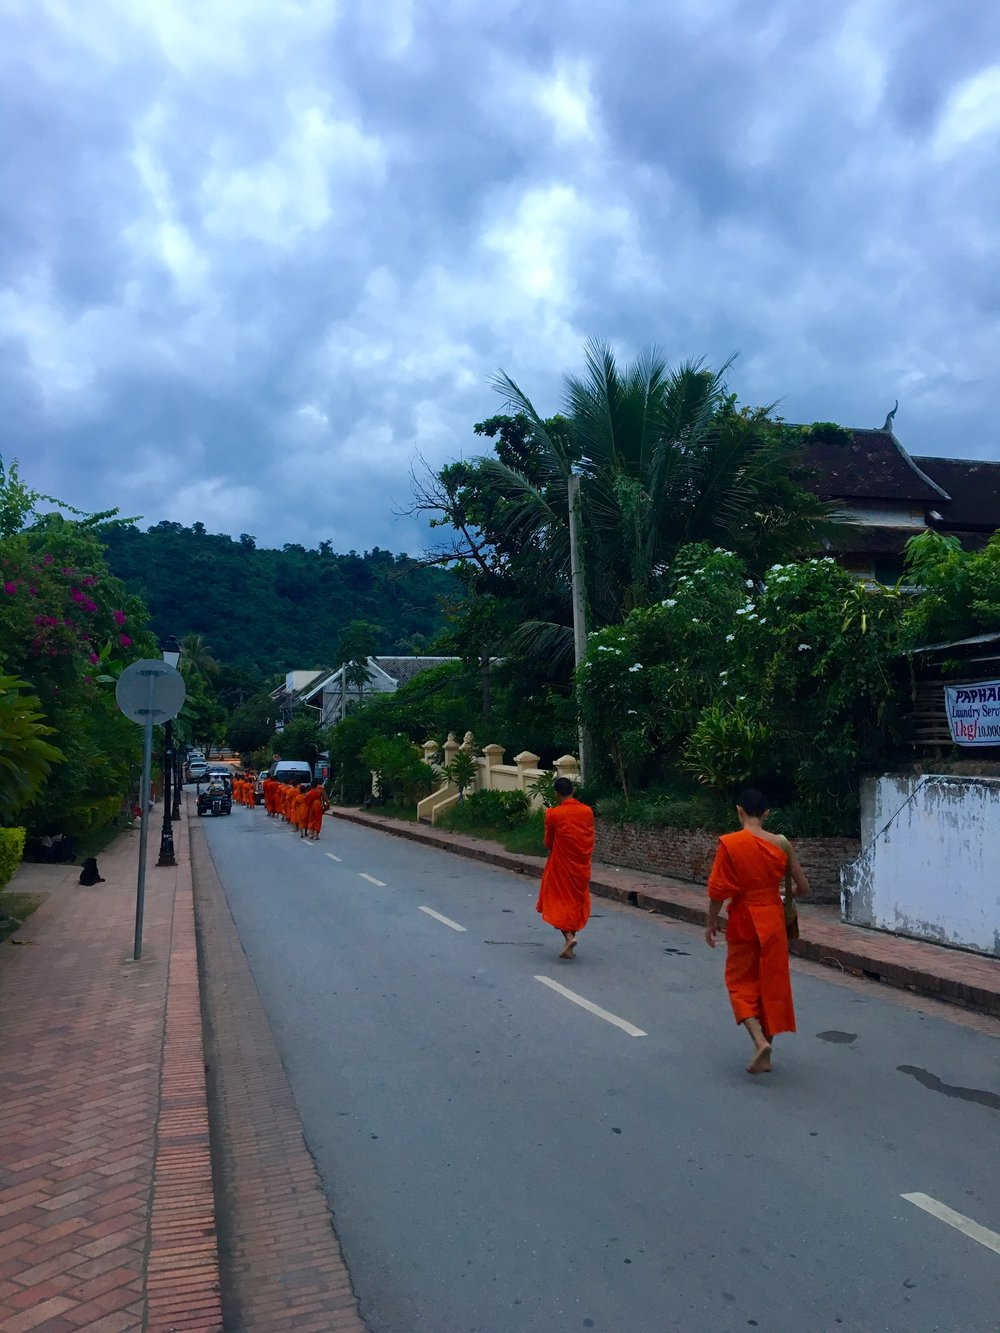 Monks walking down the road